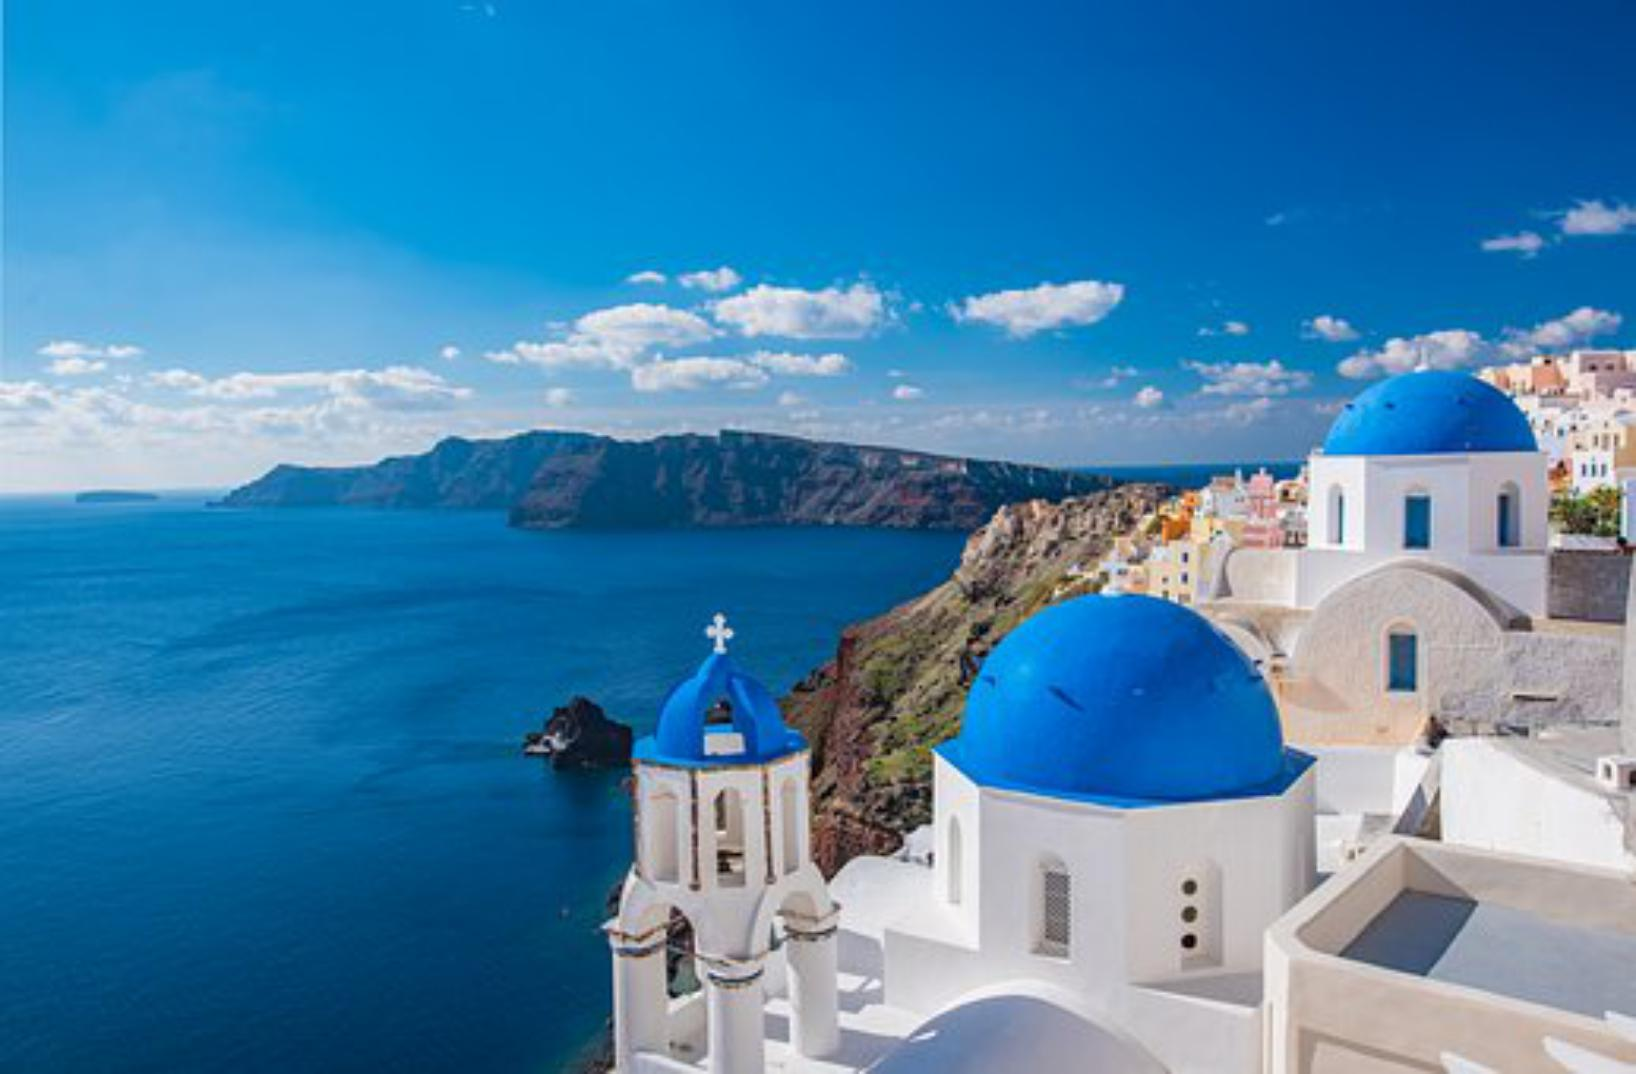 Visit The Greek Island of Santorini